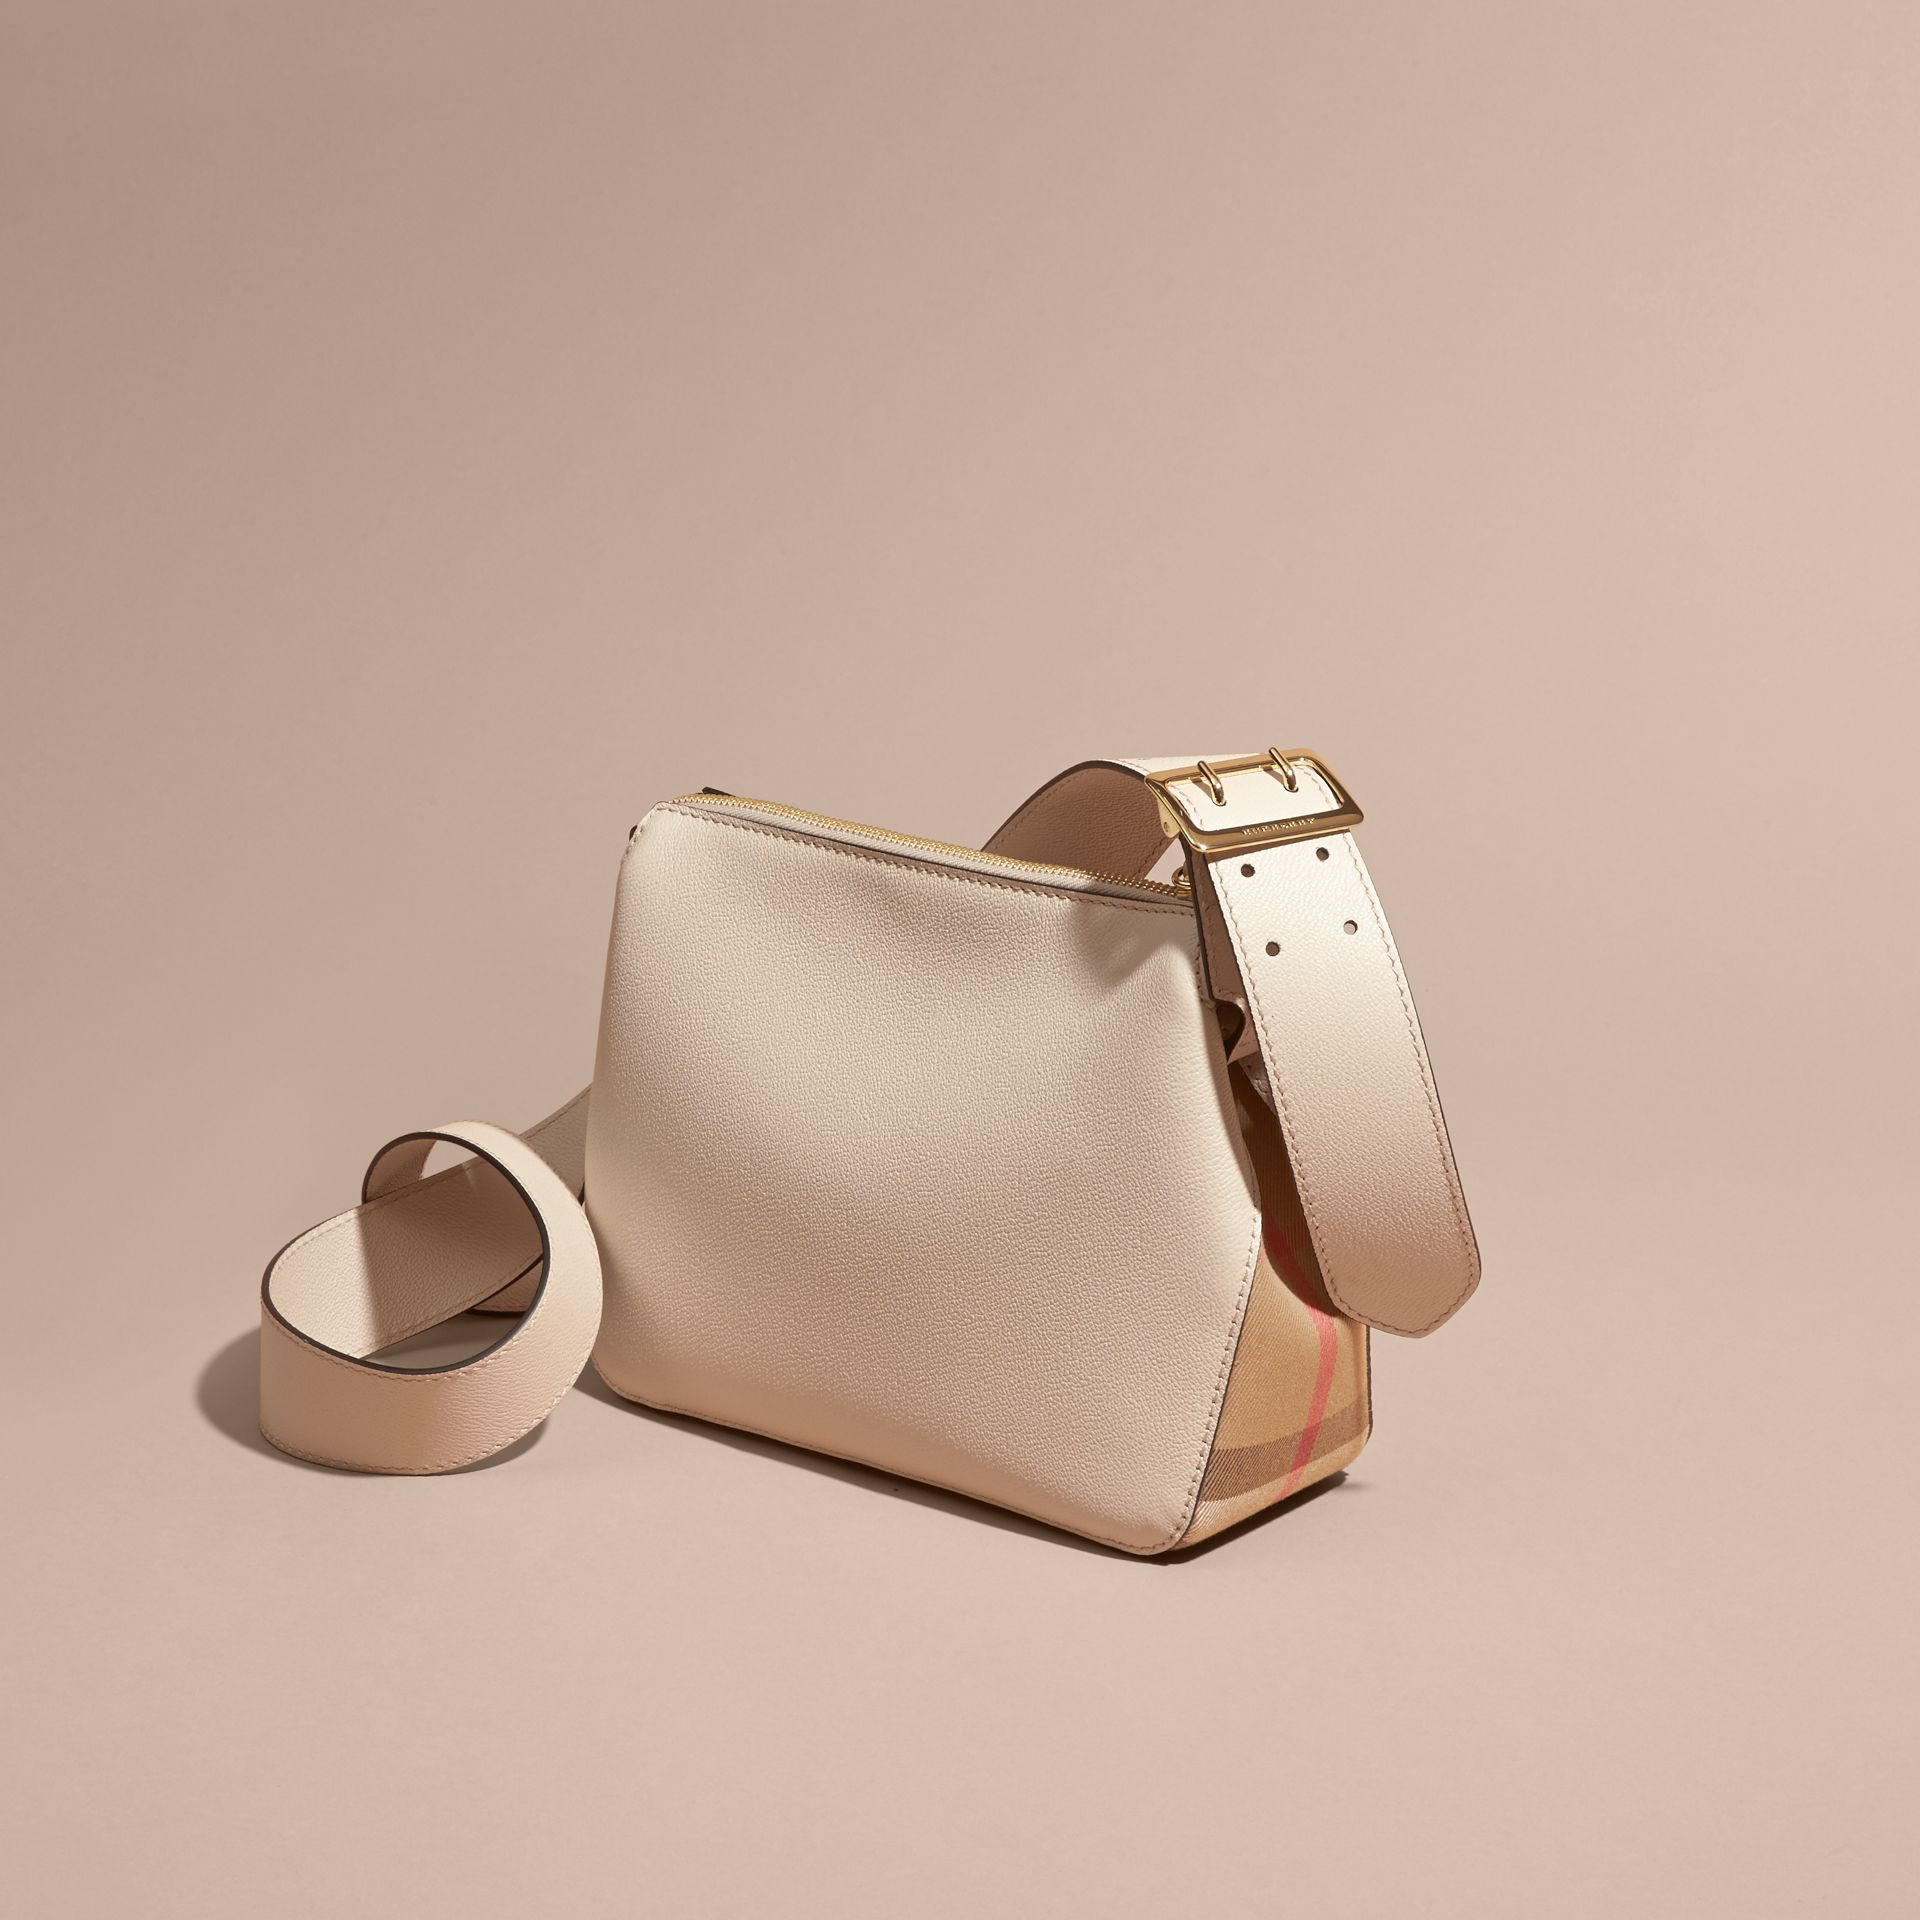 Buckle Detail Leather and House Check Crossbody Bag in Limestone - Women | Burberry - gallery image 4